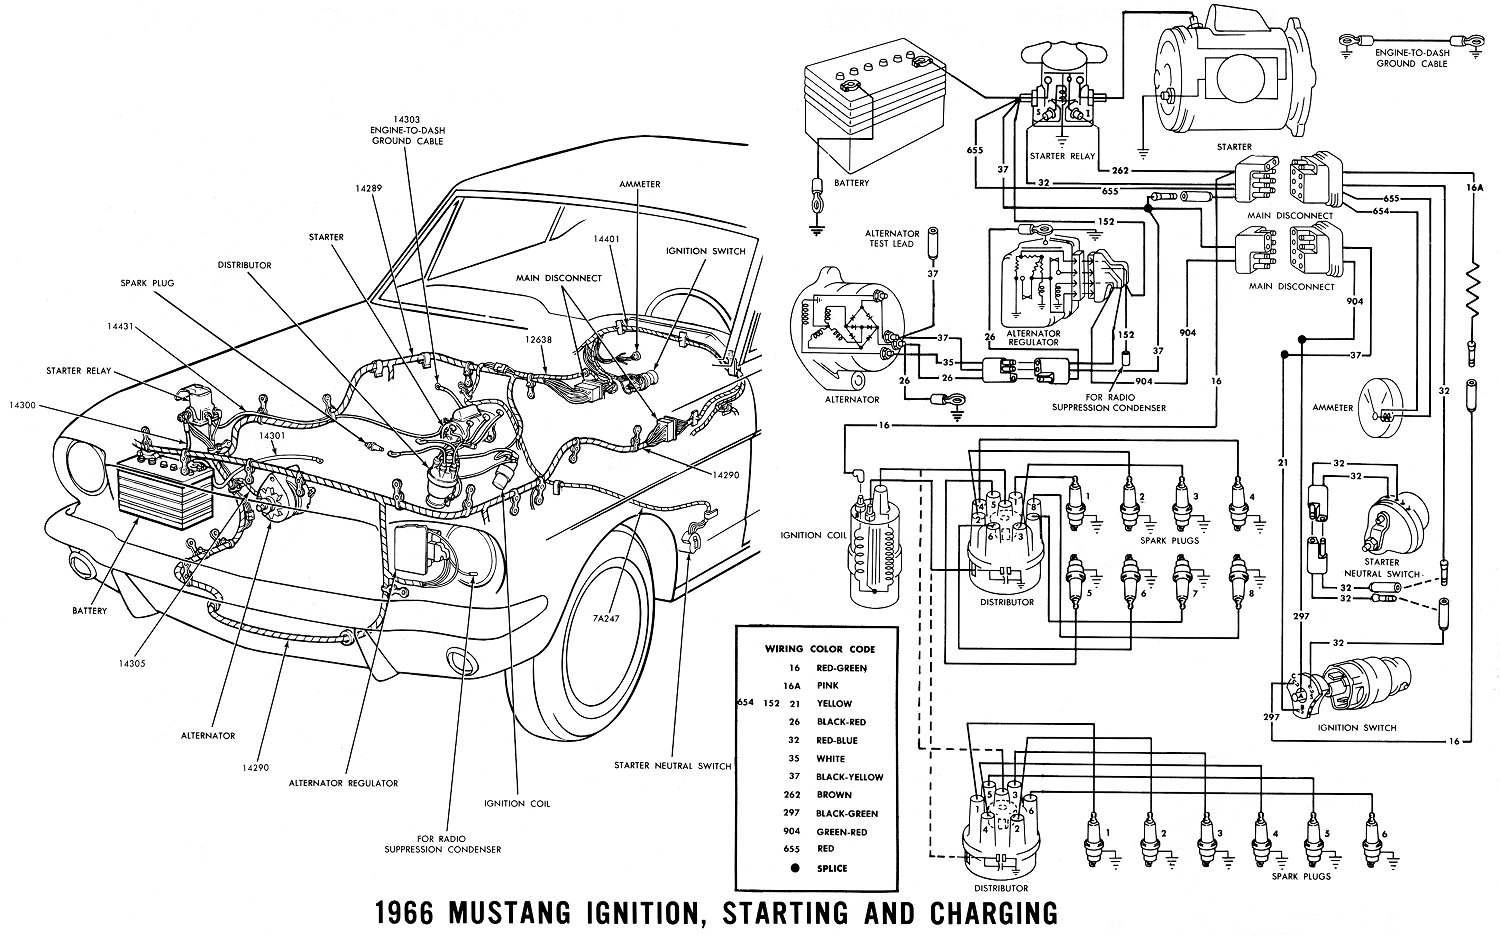 Engine Wiring Diagram Data 88 Chevy Truck Ignition 66 Mustang Change Your Idea With Design U2022 Mk 4 Vw